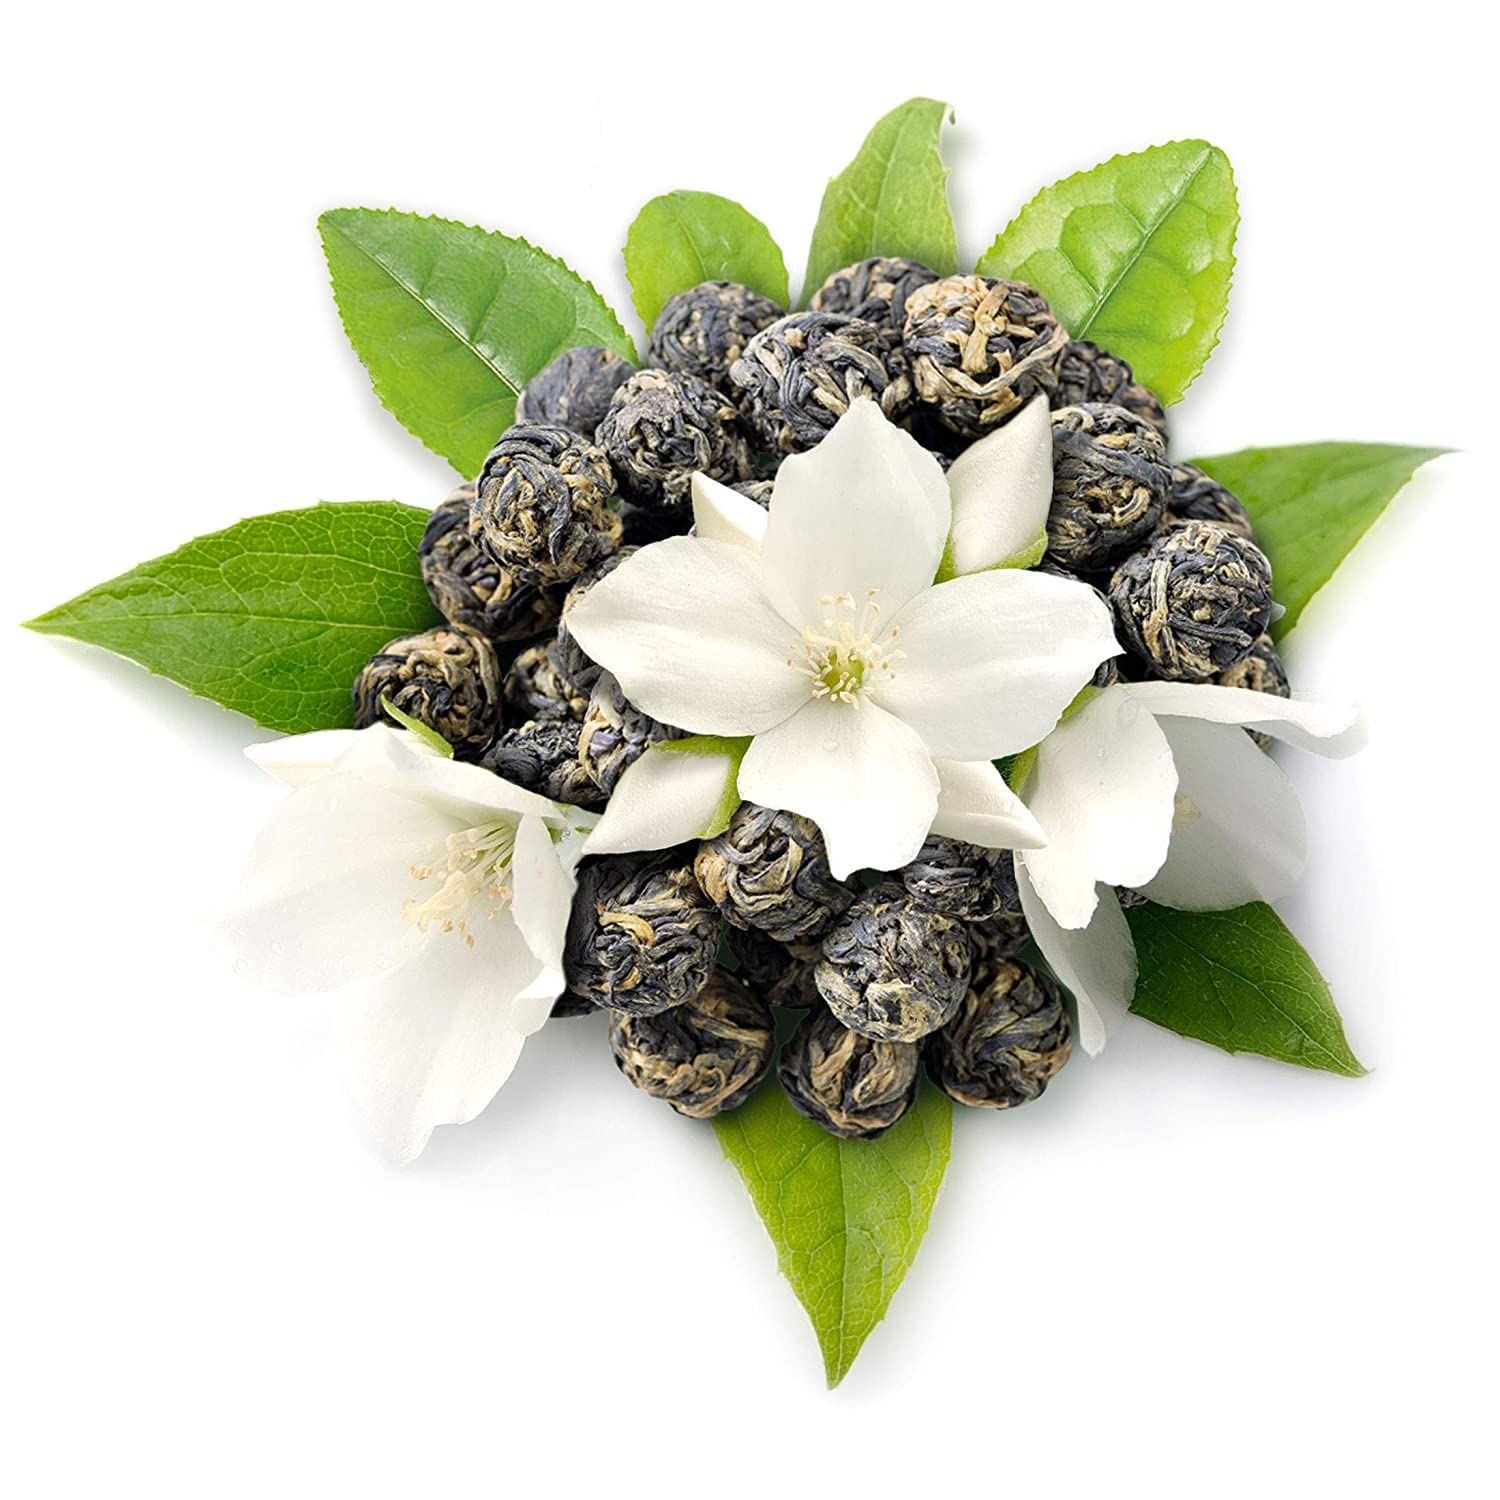 Amazon Jasmine Dragon Pearls Green Tea Premium Flavor